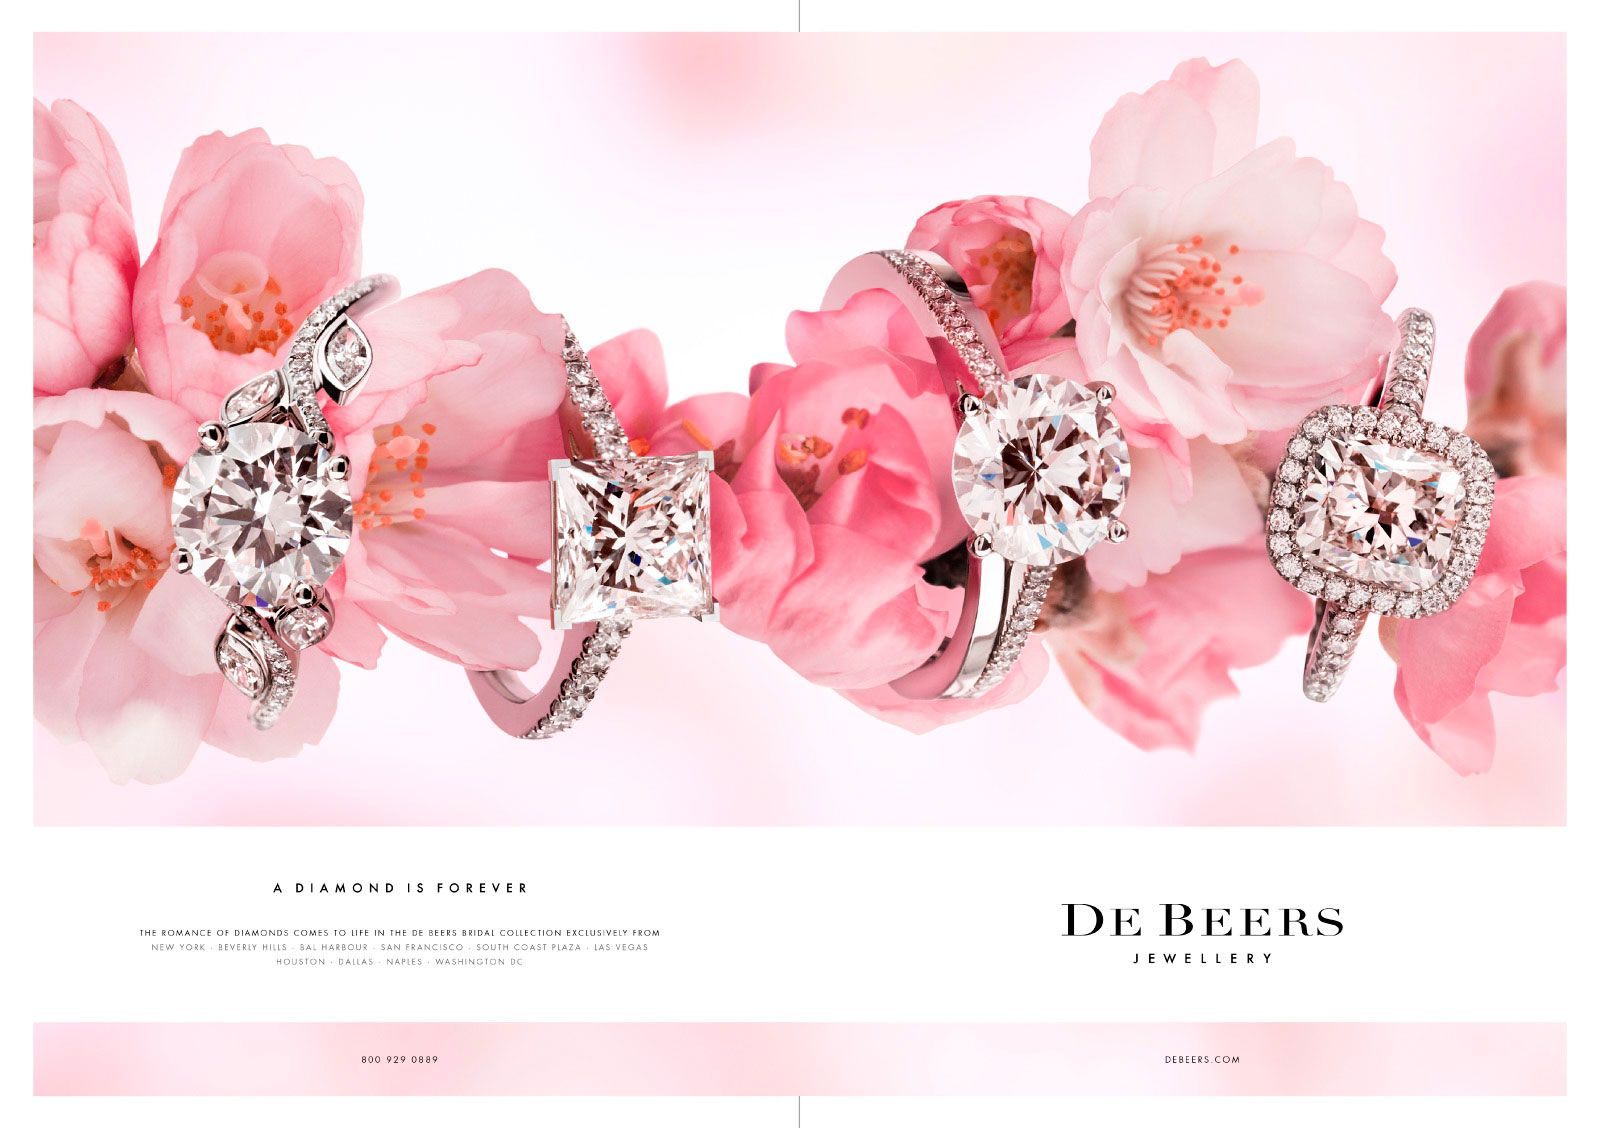 Pin by Romanson from J.ESTINA on AD reference | Pinterest | De beers ...